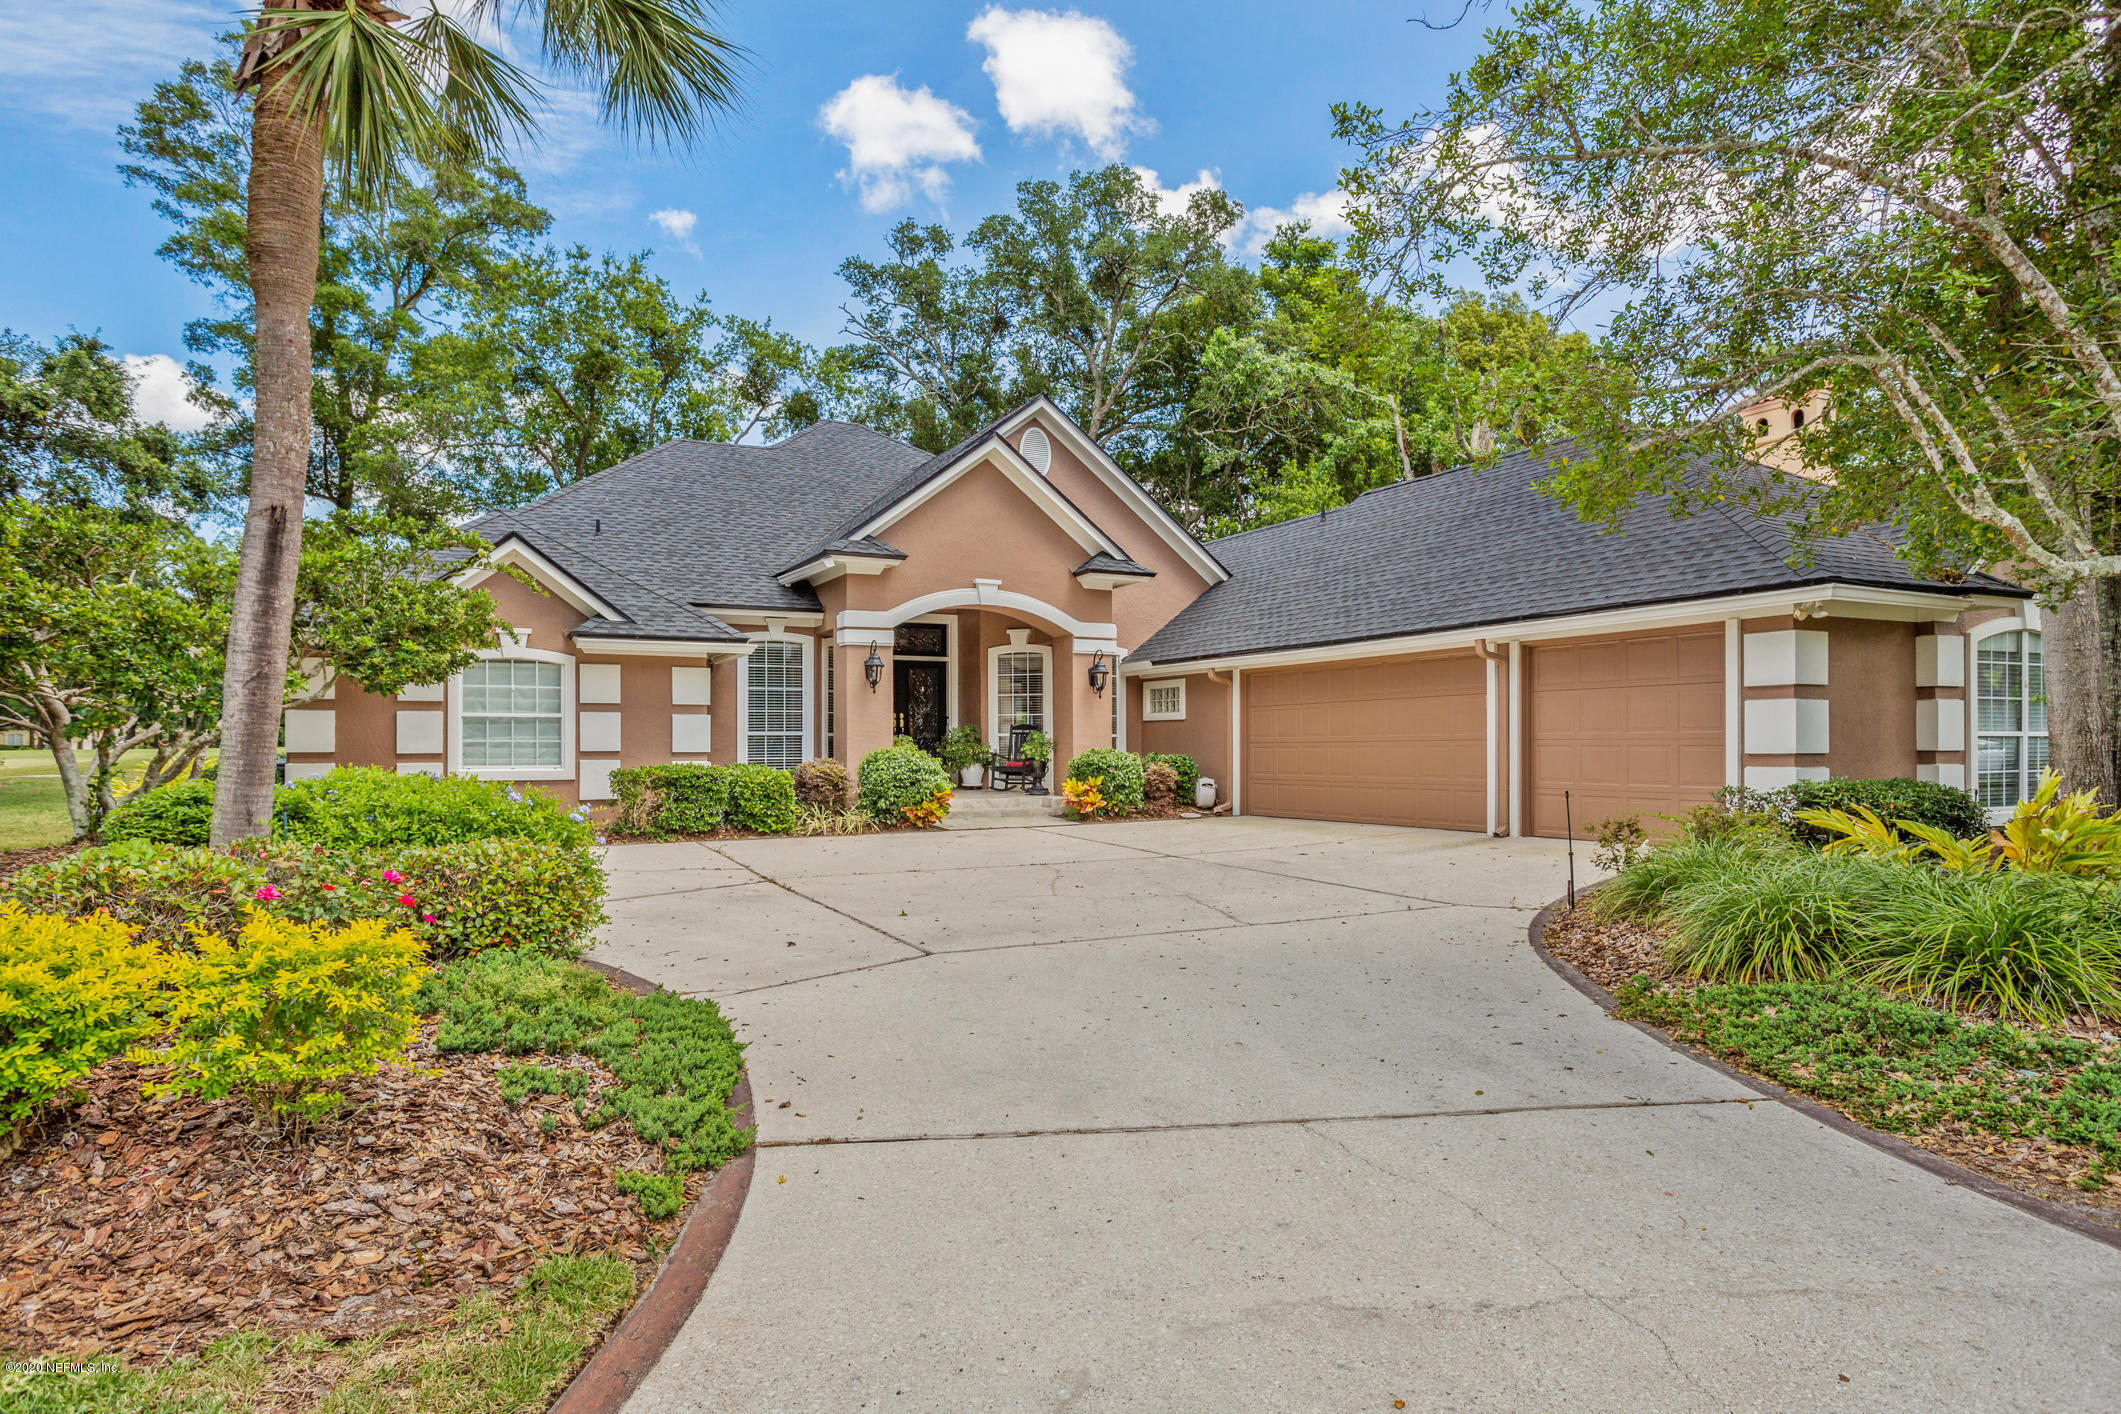 839 CHICOPIT, JACKSONVILLE, FLORIDA 32225, 5 Bedrooms Bedrooms, ,4 BathroomsBathrooms,Residential,For sale,CHICOPIT,1053517